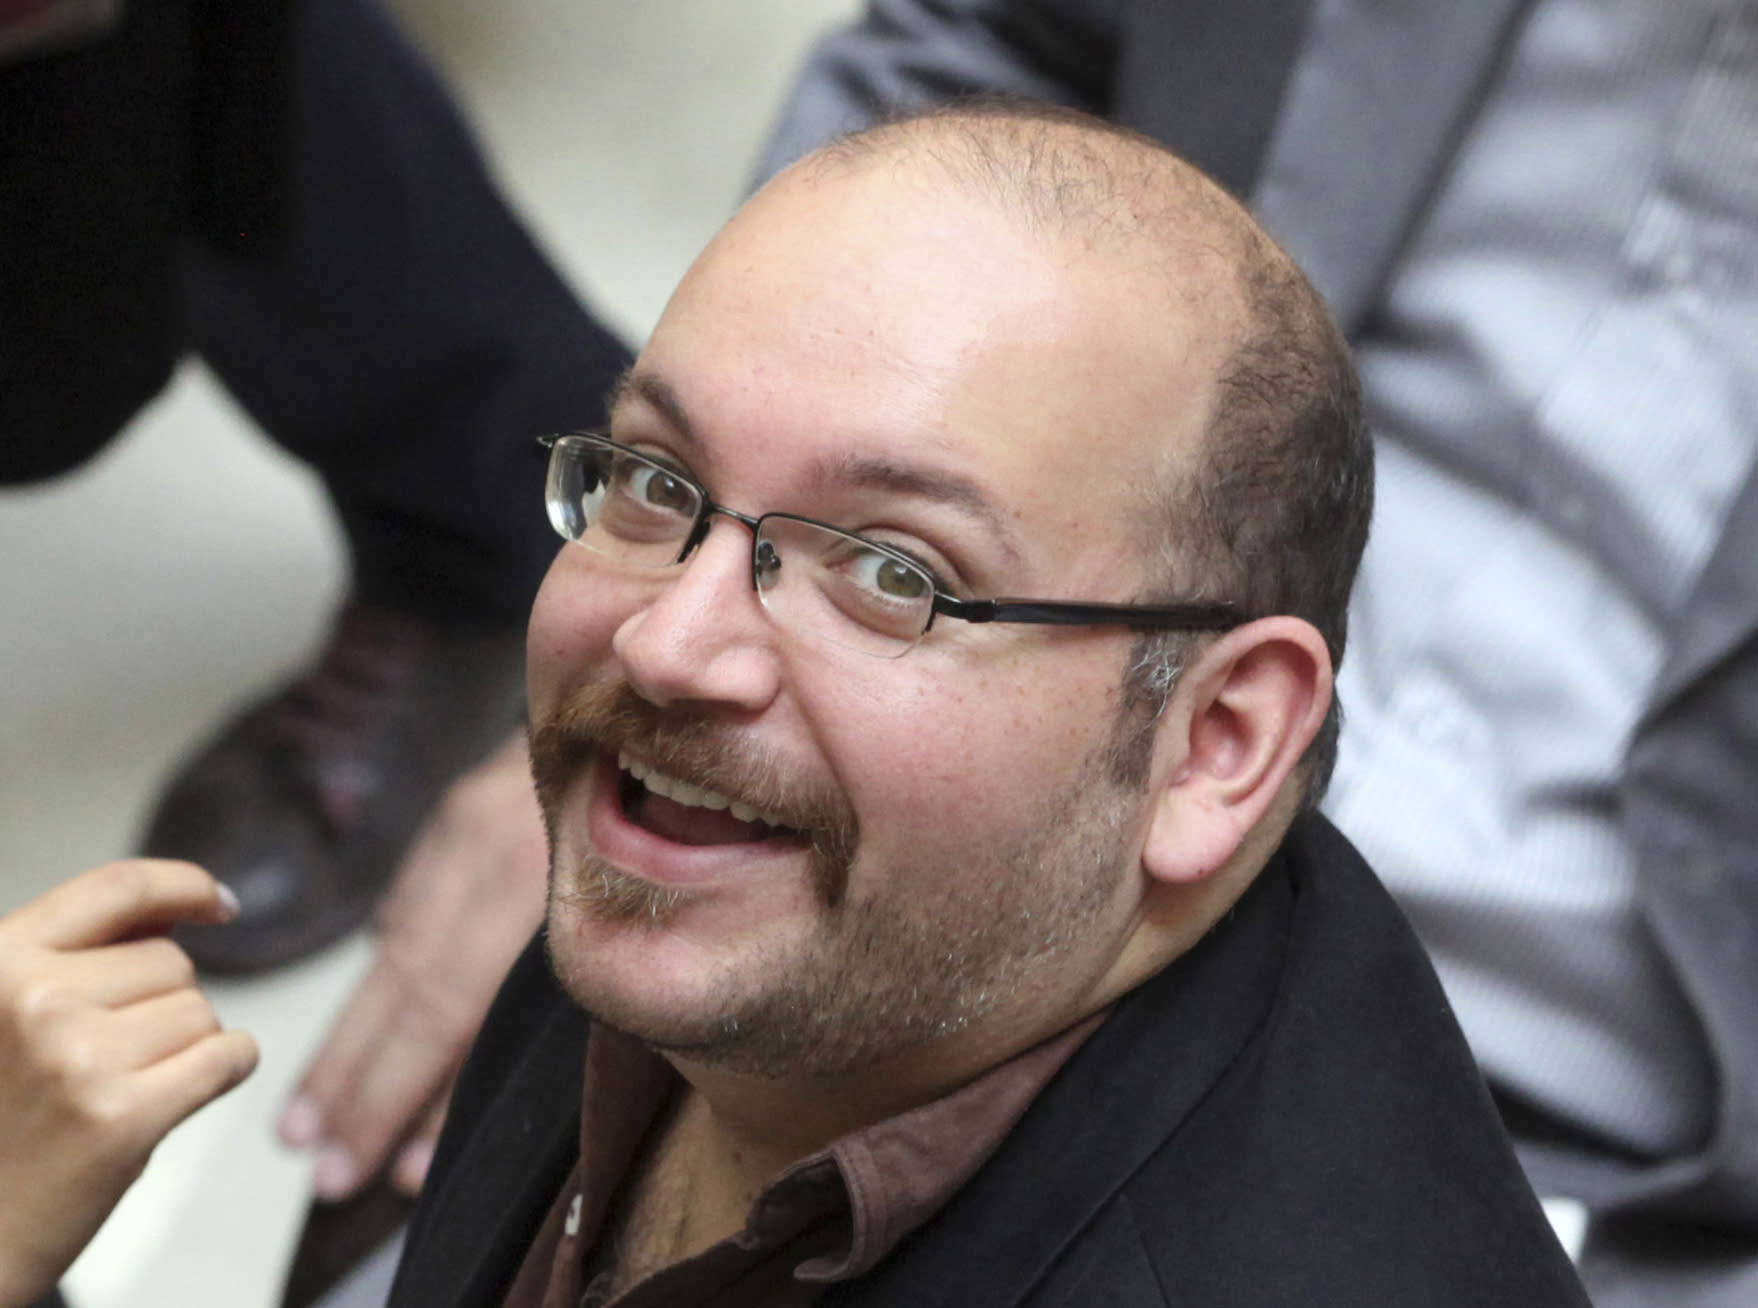 Lawyer: Washington Post reporter in Iran faces 4 charges